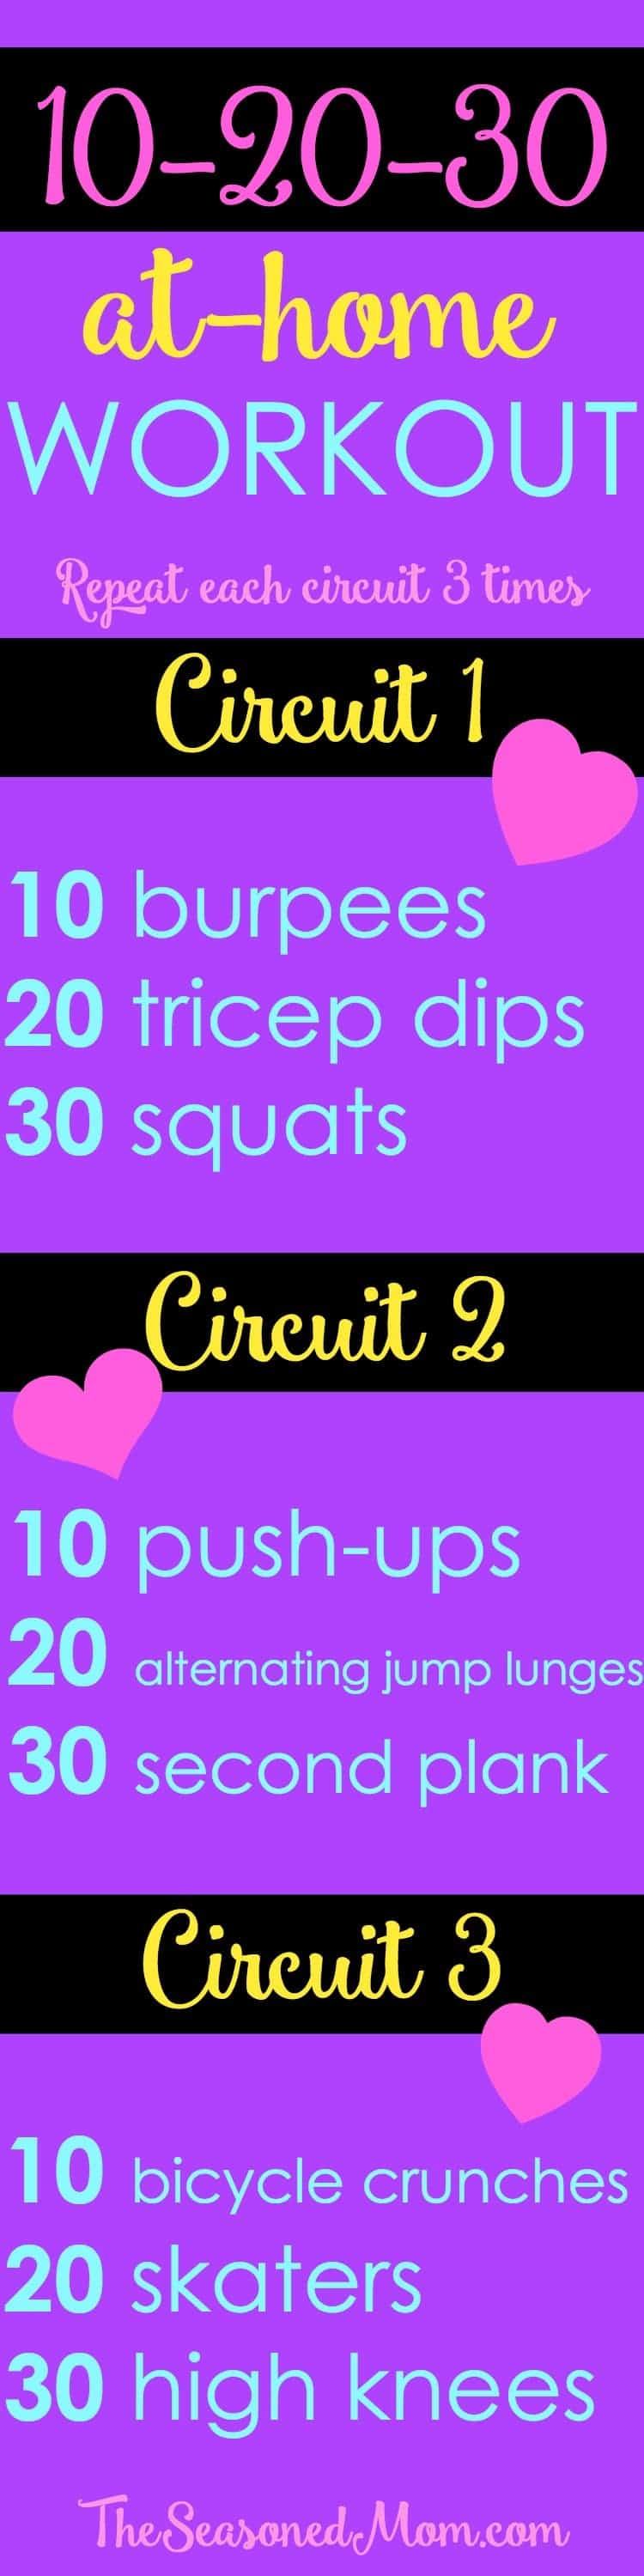 This 10-20-30 At-Home Workout does not require any equipment, takes only 20 minutes, and includes both cardio and strength training for a full body sweat!